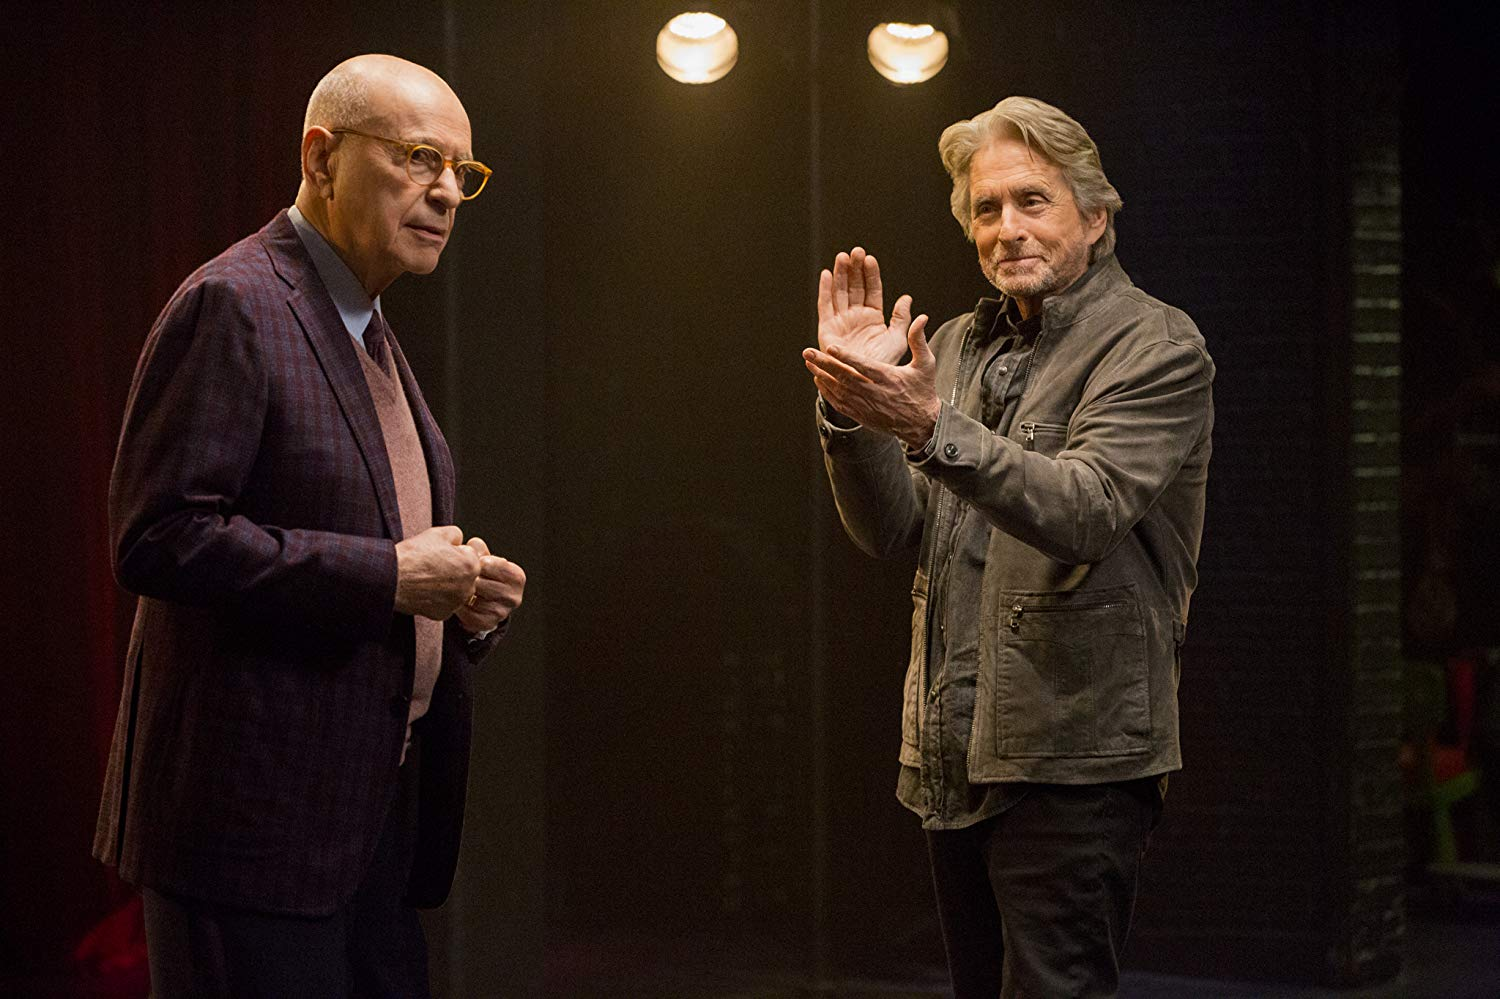 The Kominsky Method michael douglas Netflix